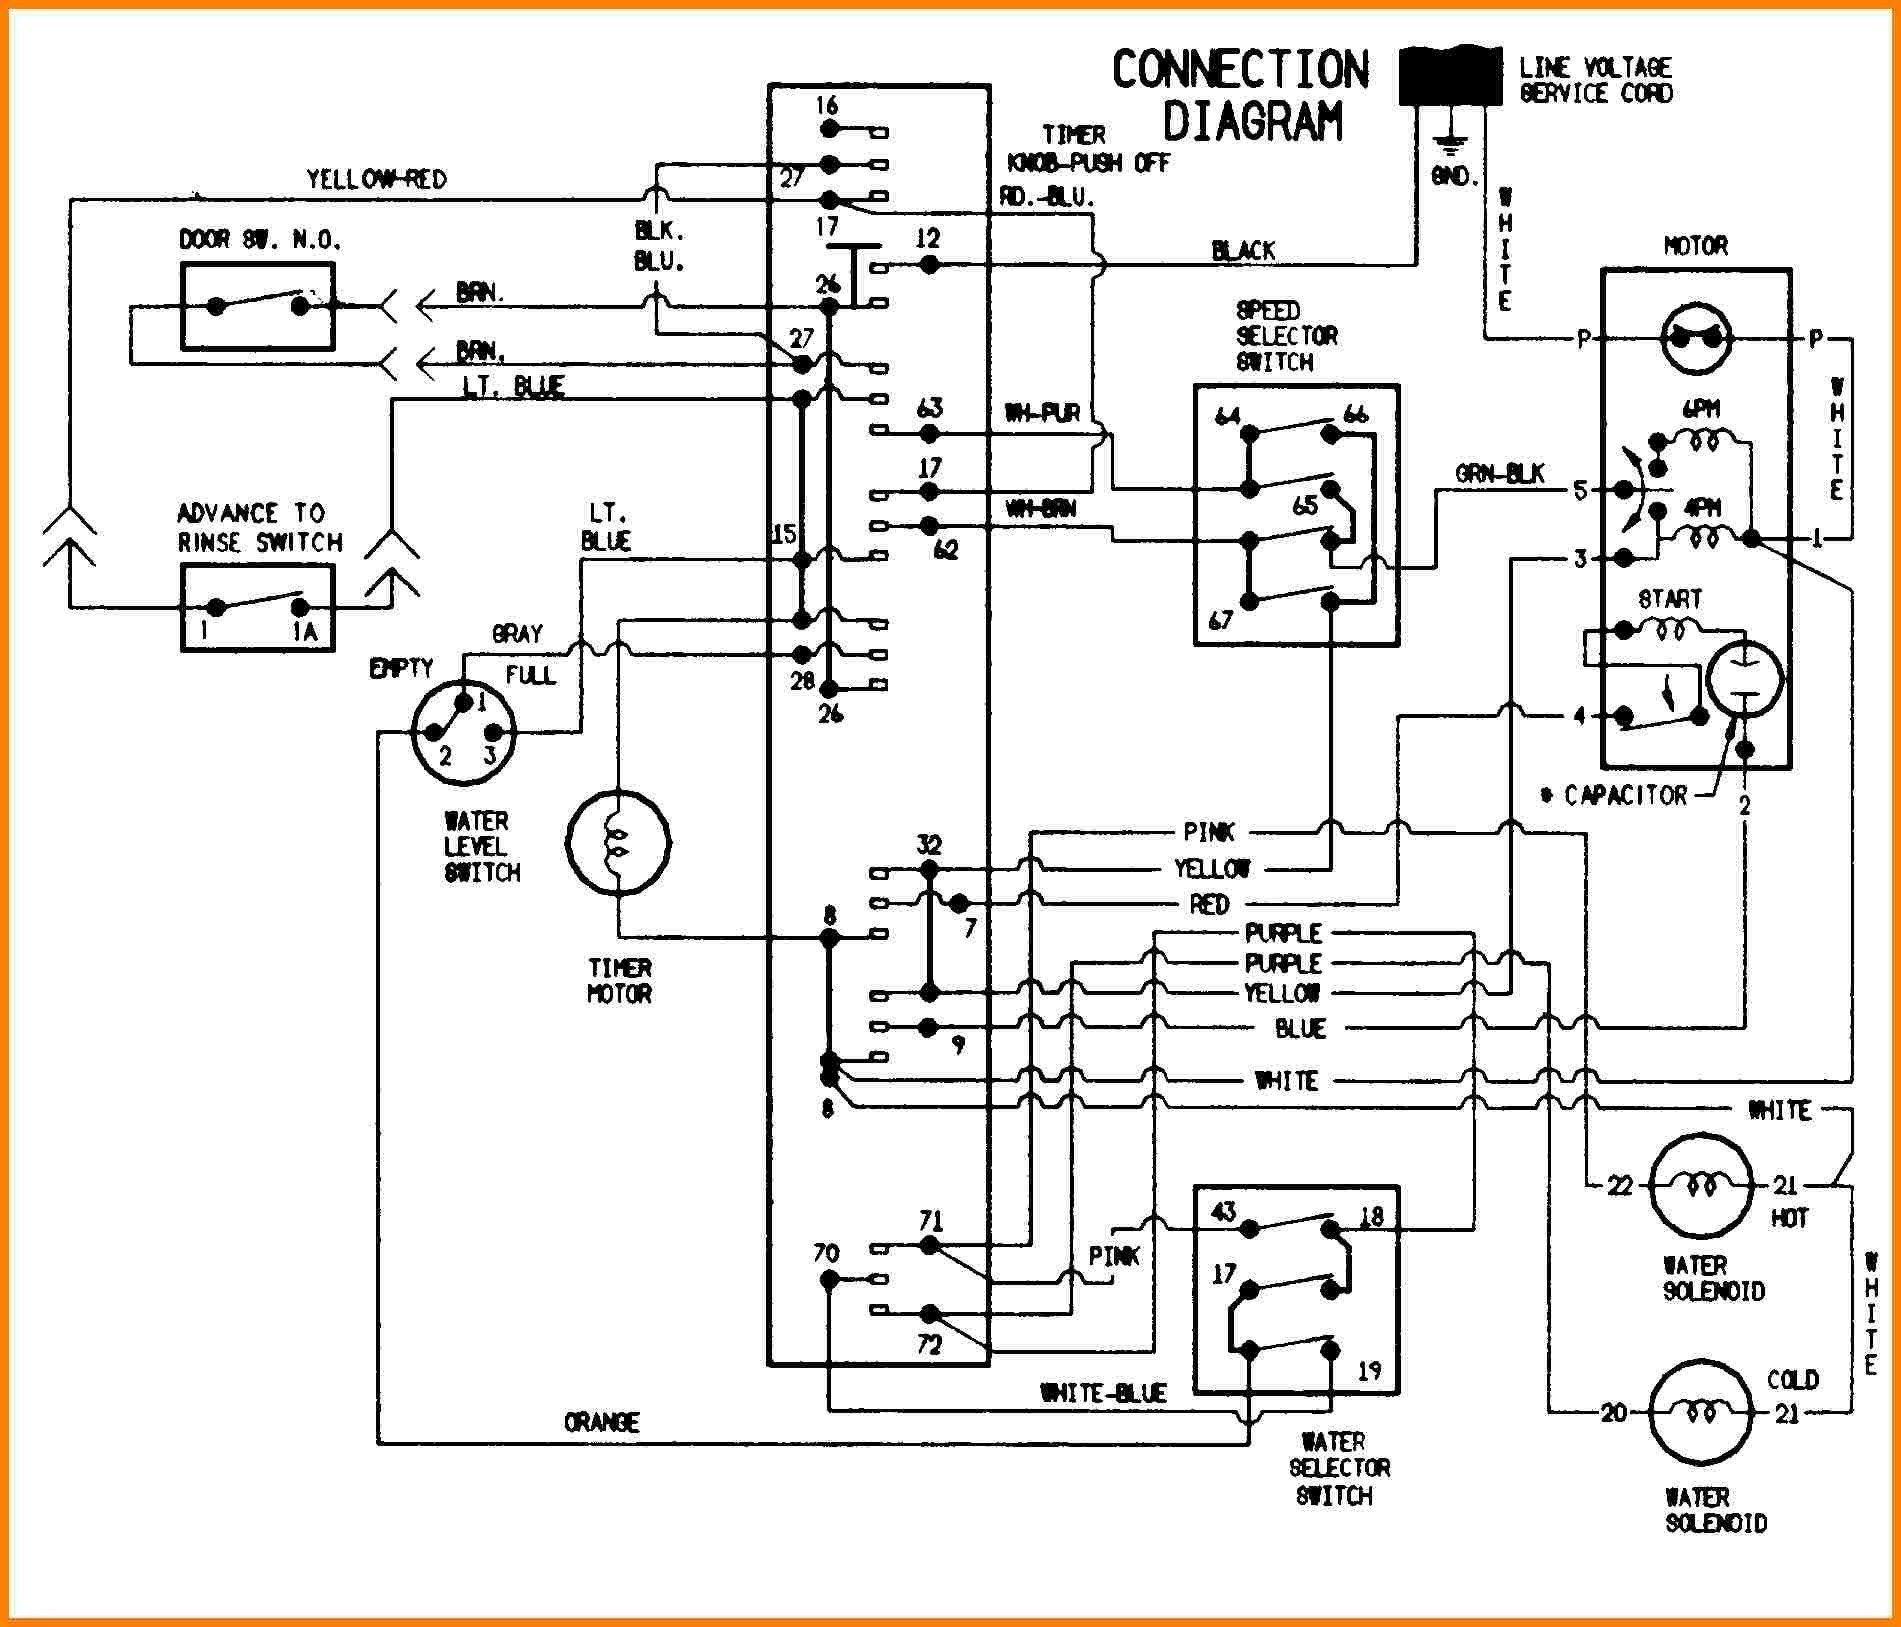 Wiring Diagram Of Washing Machine Motor Http Bookingritzcarlton Info Wiring Diagram Of Wa Washing Machine Motor Circuit Diagram Washing Machine Whirlpool